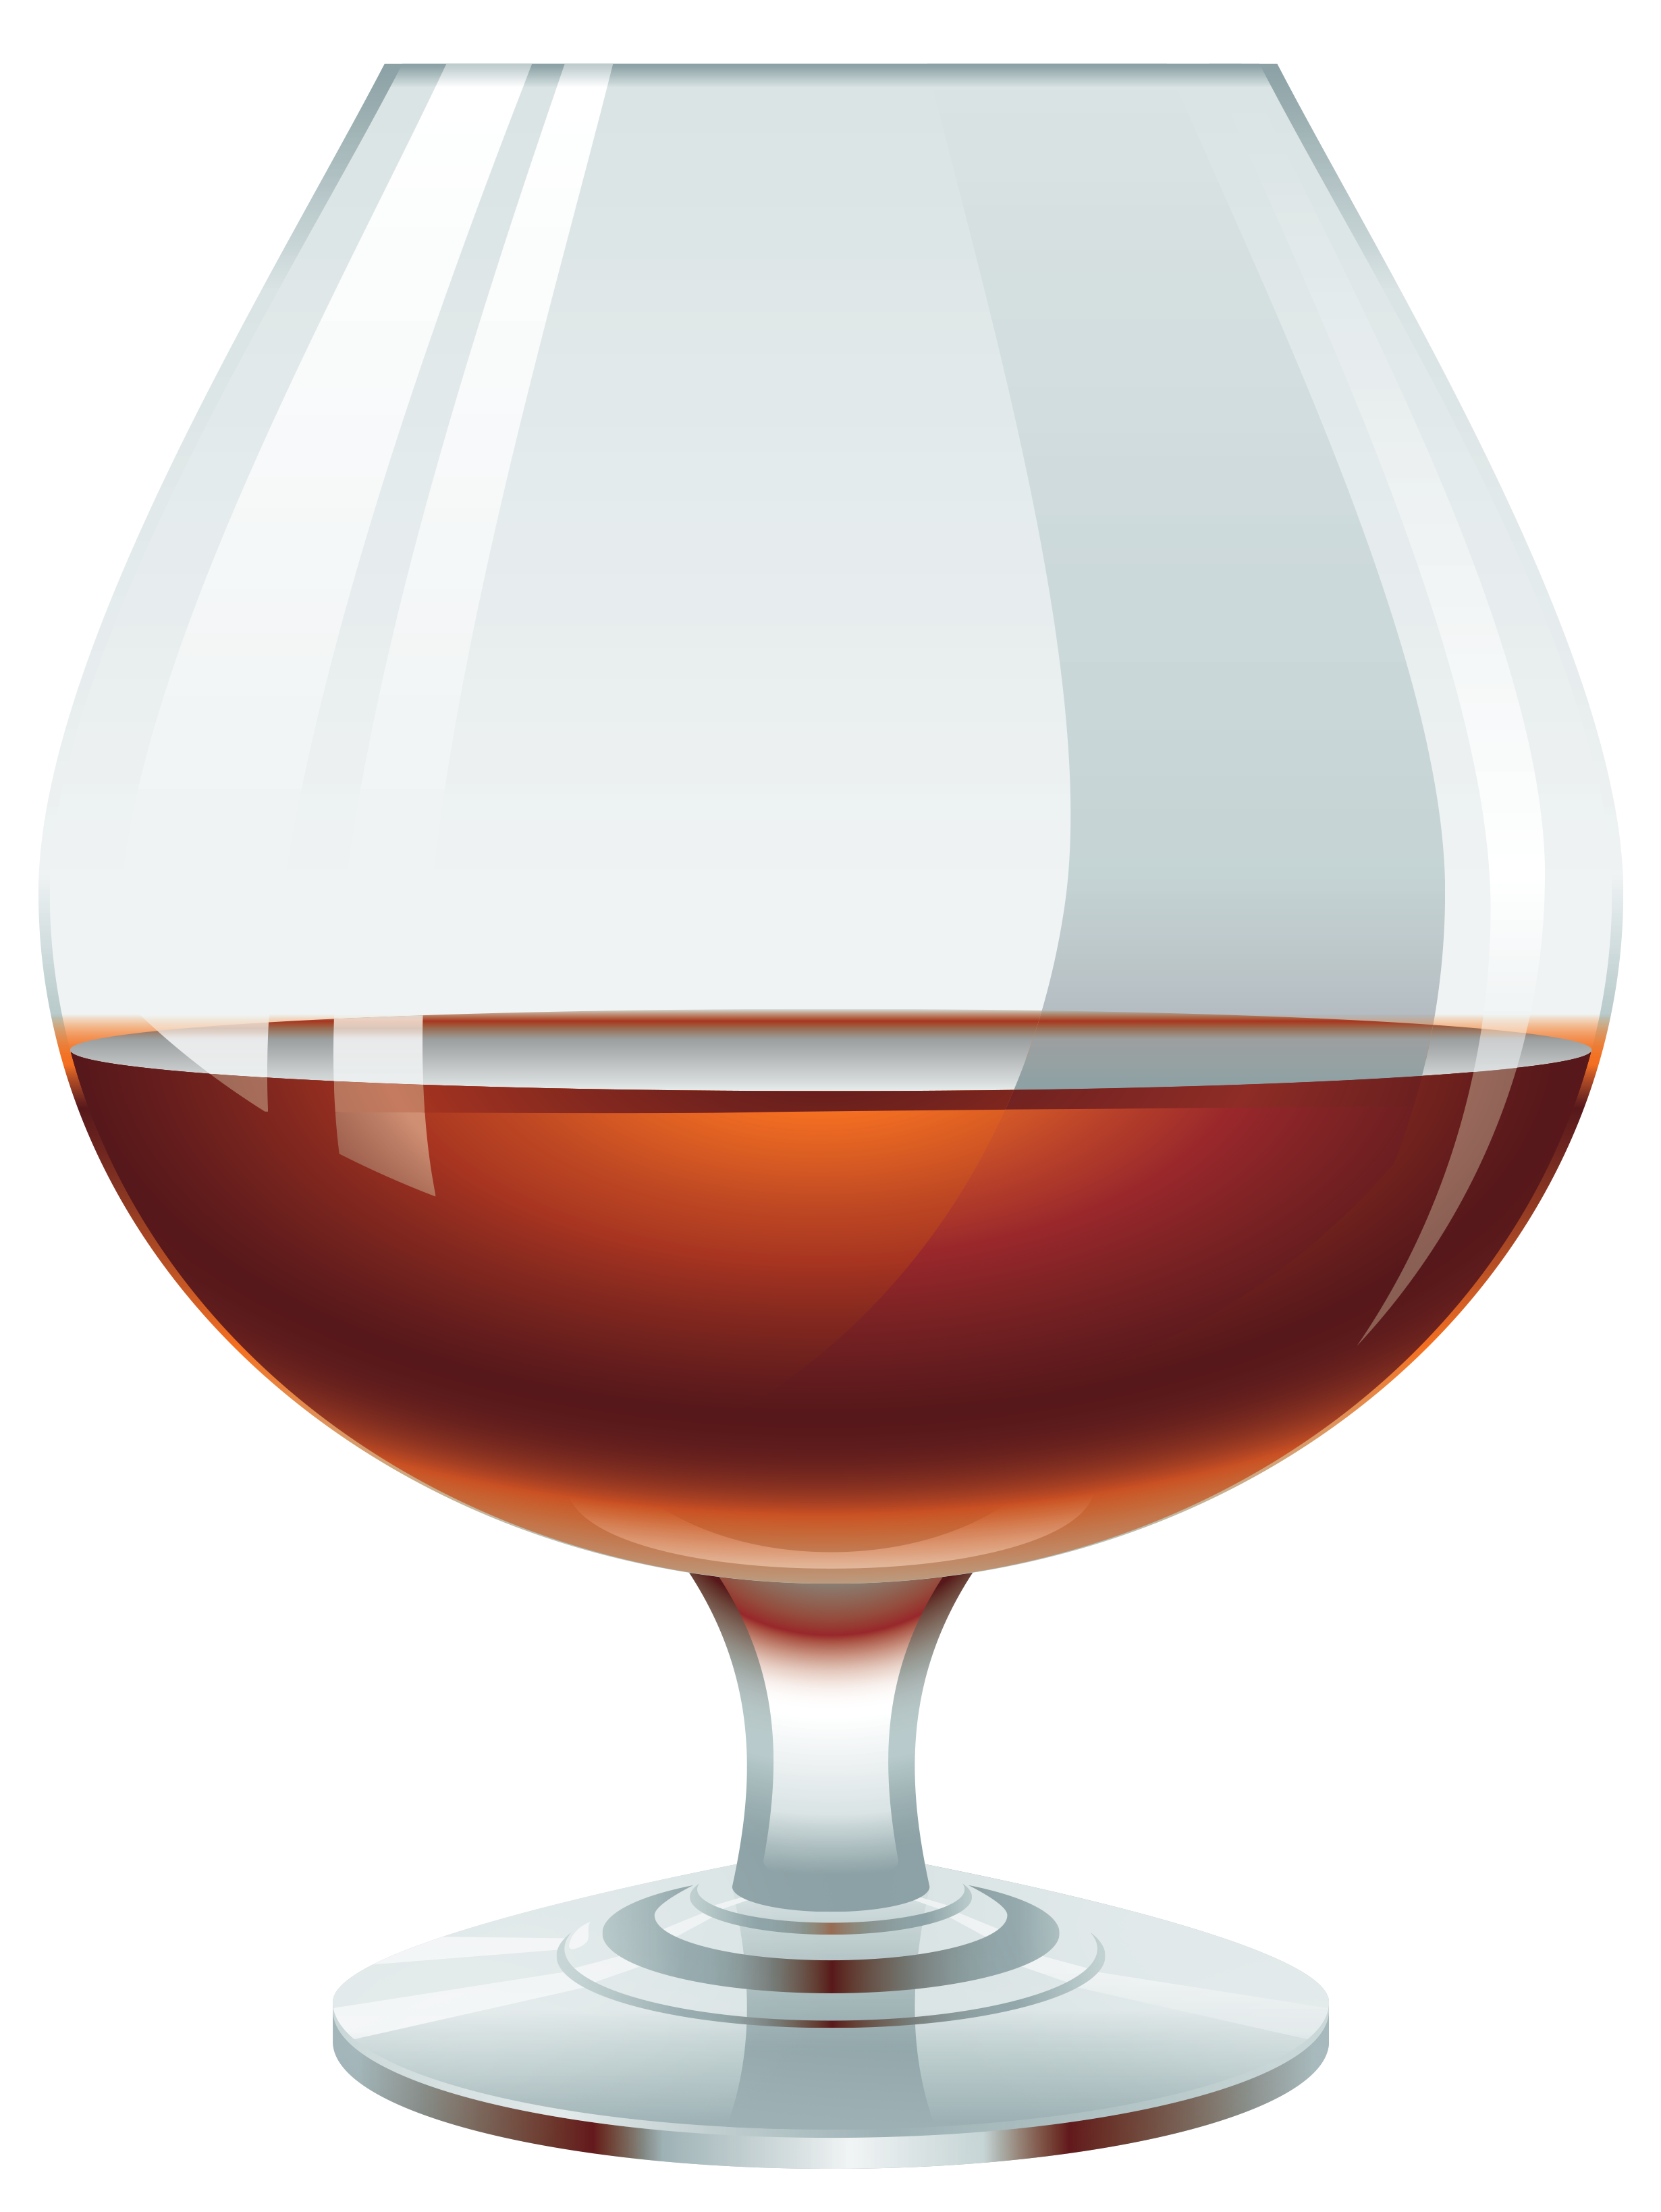 With clipart gallery yopriceville. Brandy glass png banner free stock